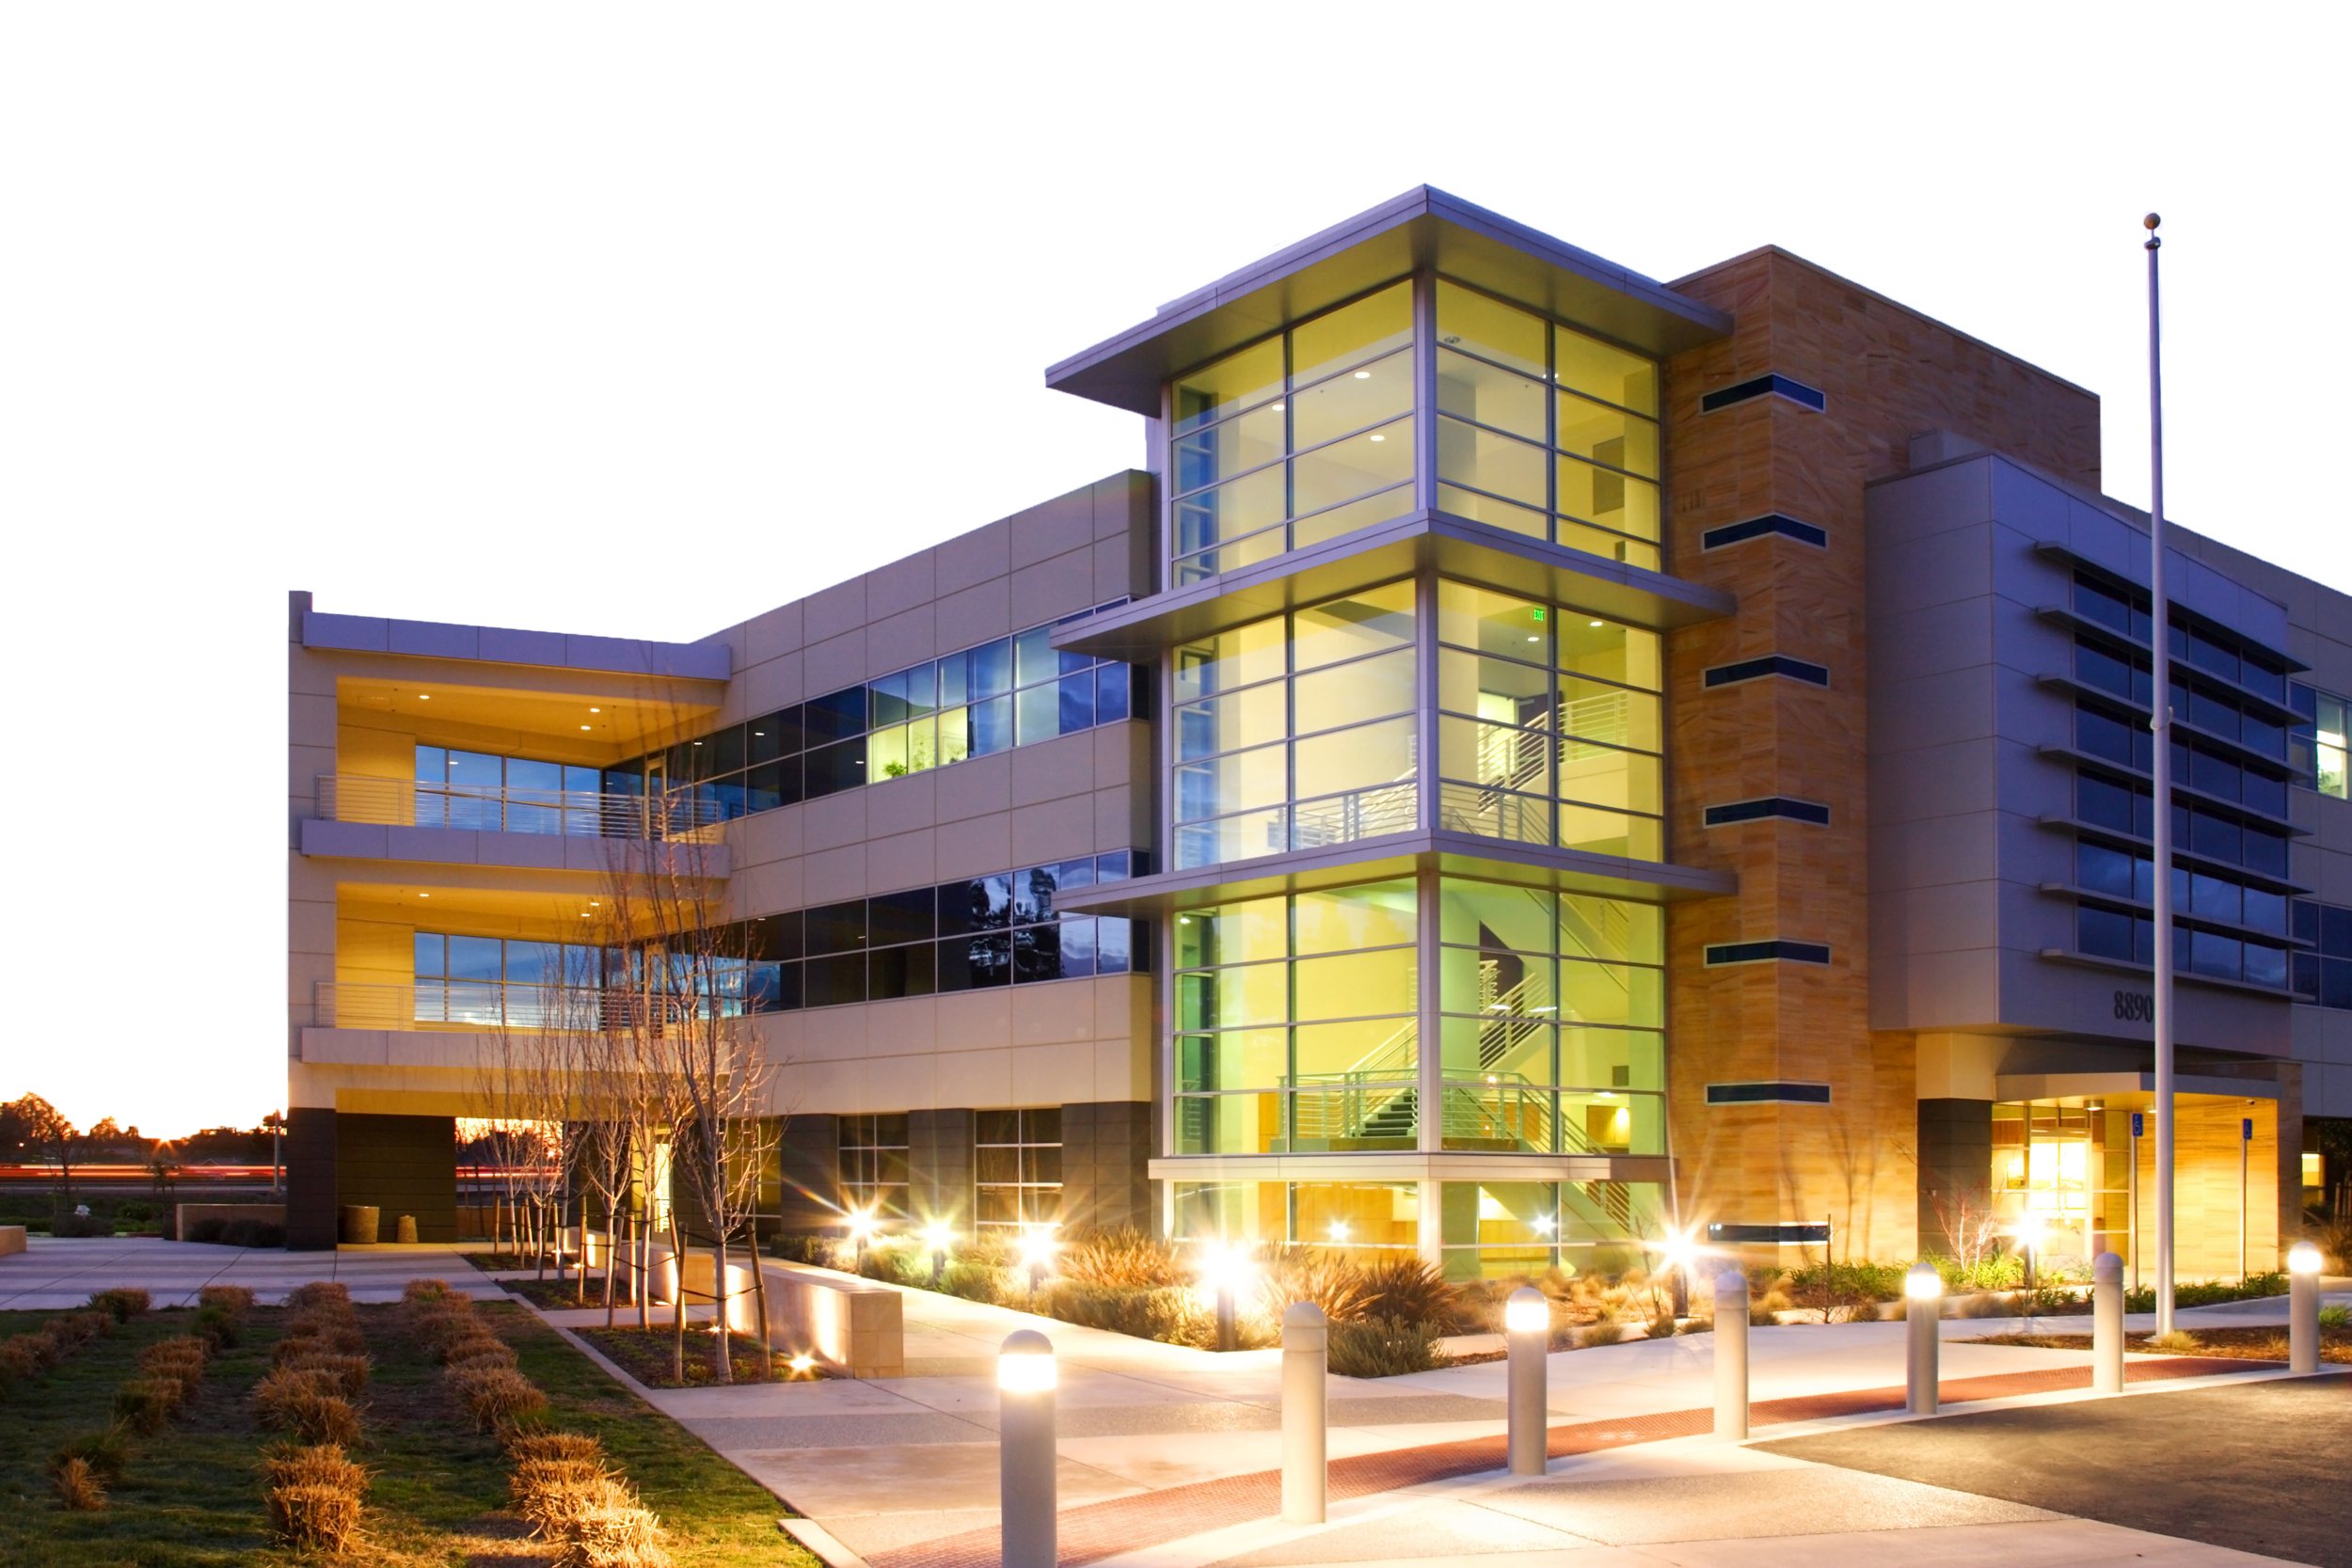 We provide network solutions to commercial, industrial, and manufacturing facilities for any project size. Whether your project is retro-fit or new construction we are here to help. -